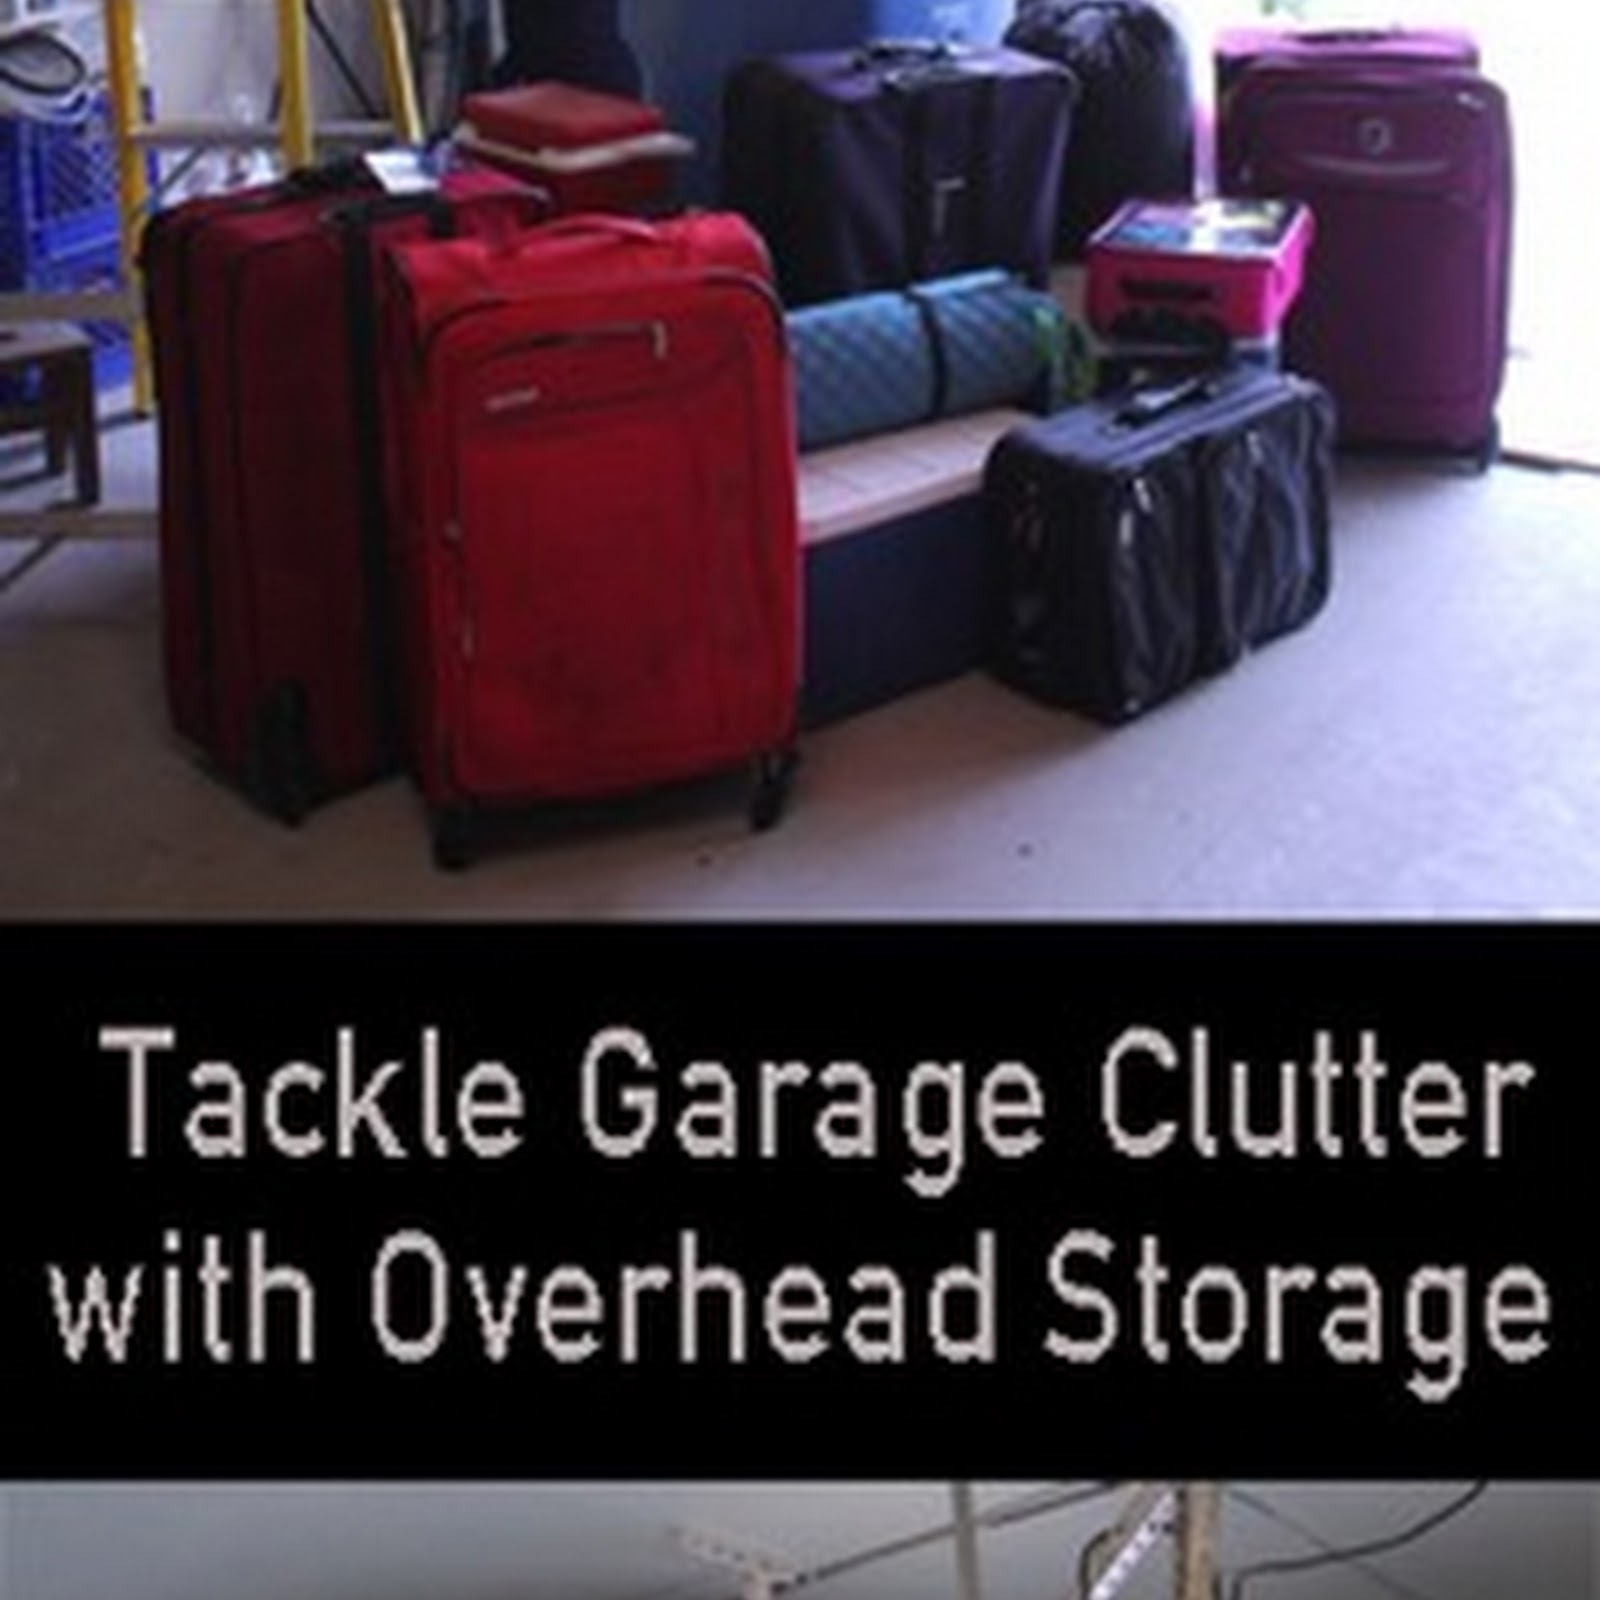 Tackle Garage Clutter With Overhead Storage: A Fleximount Review